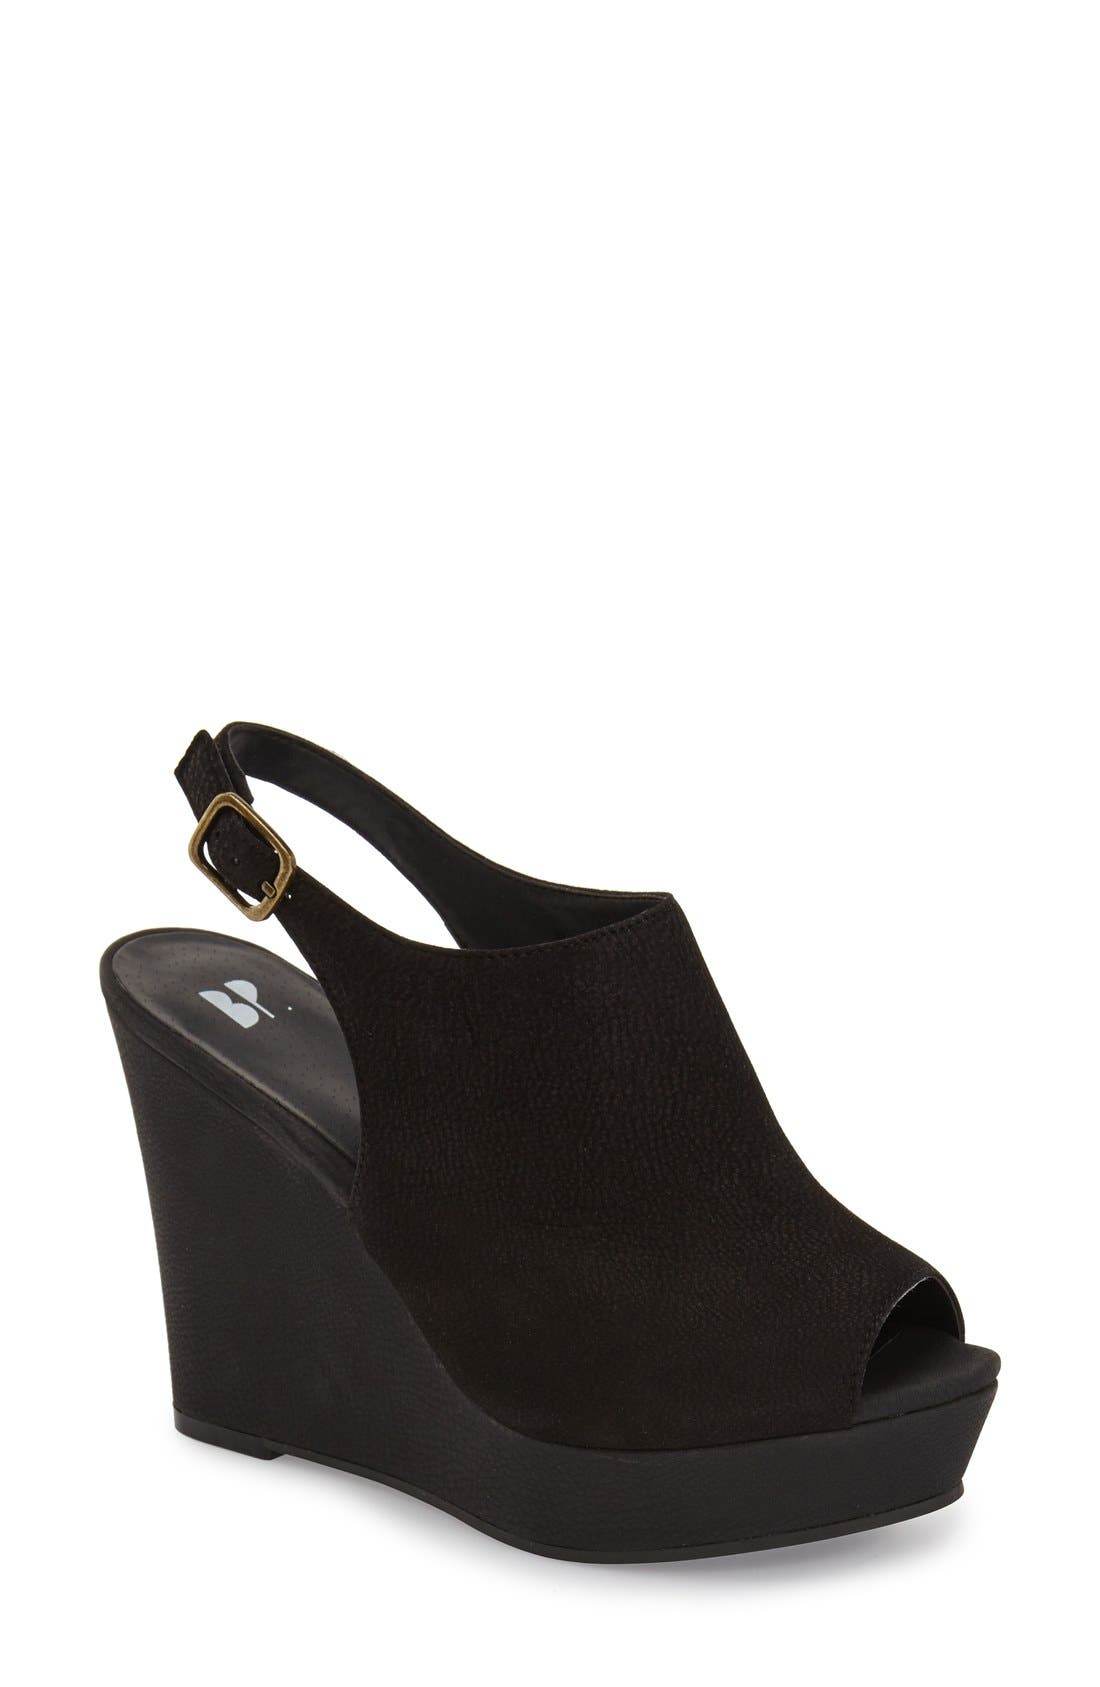 'Roundabout' Slingback Peep Toe Wedge,                             Main thumbnail 1, color,                             001